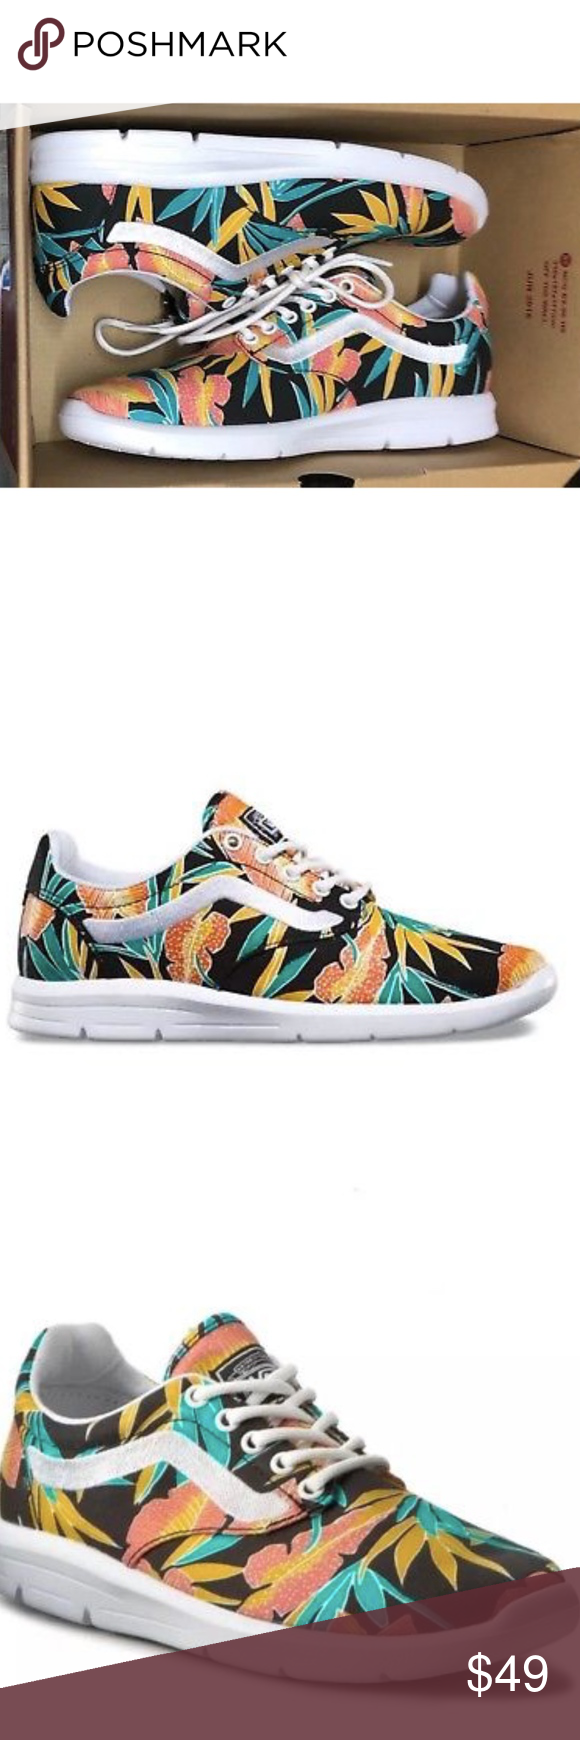 e7f071231b Vans Iso 1.5 Tropical Leaves Black True White Shoe Vans Iso 1.5 Tropical  Leaves Black True